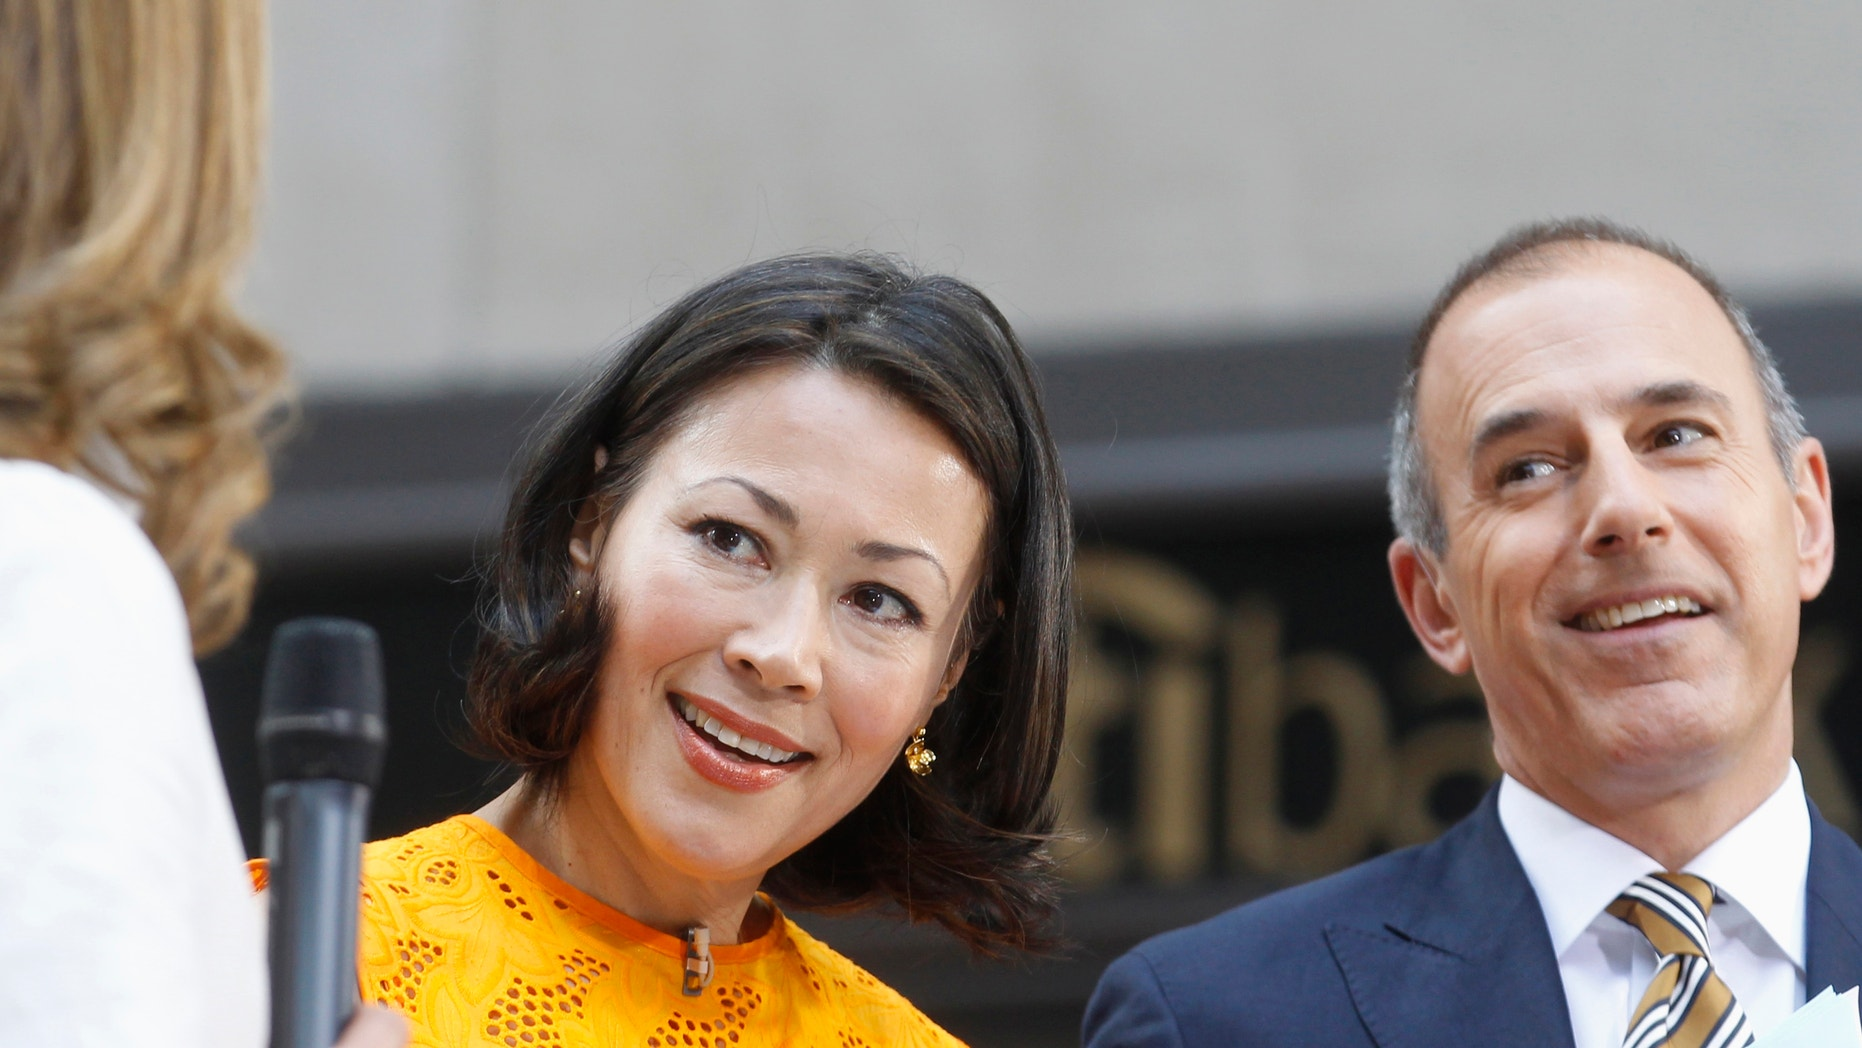 Ann Curry and Matt Lauer appear in New York June 22, 2012.